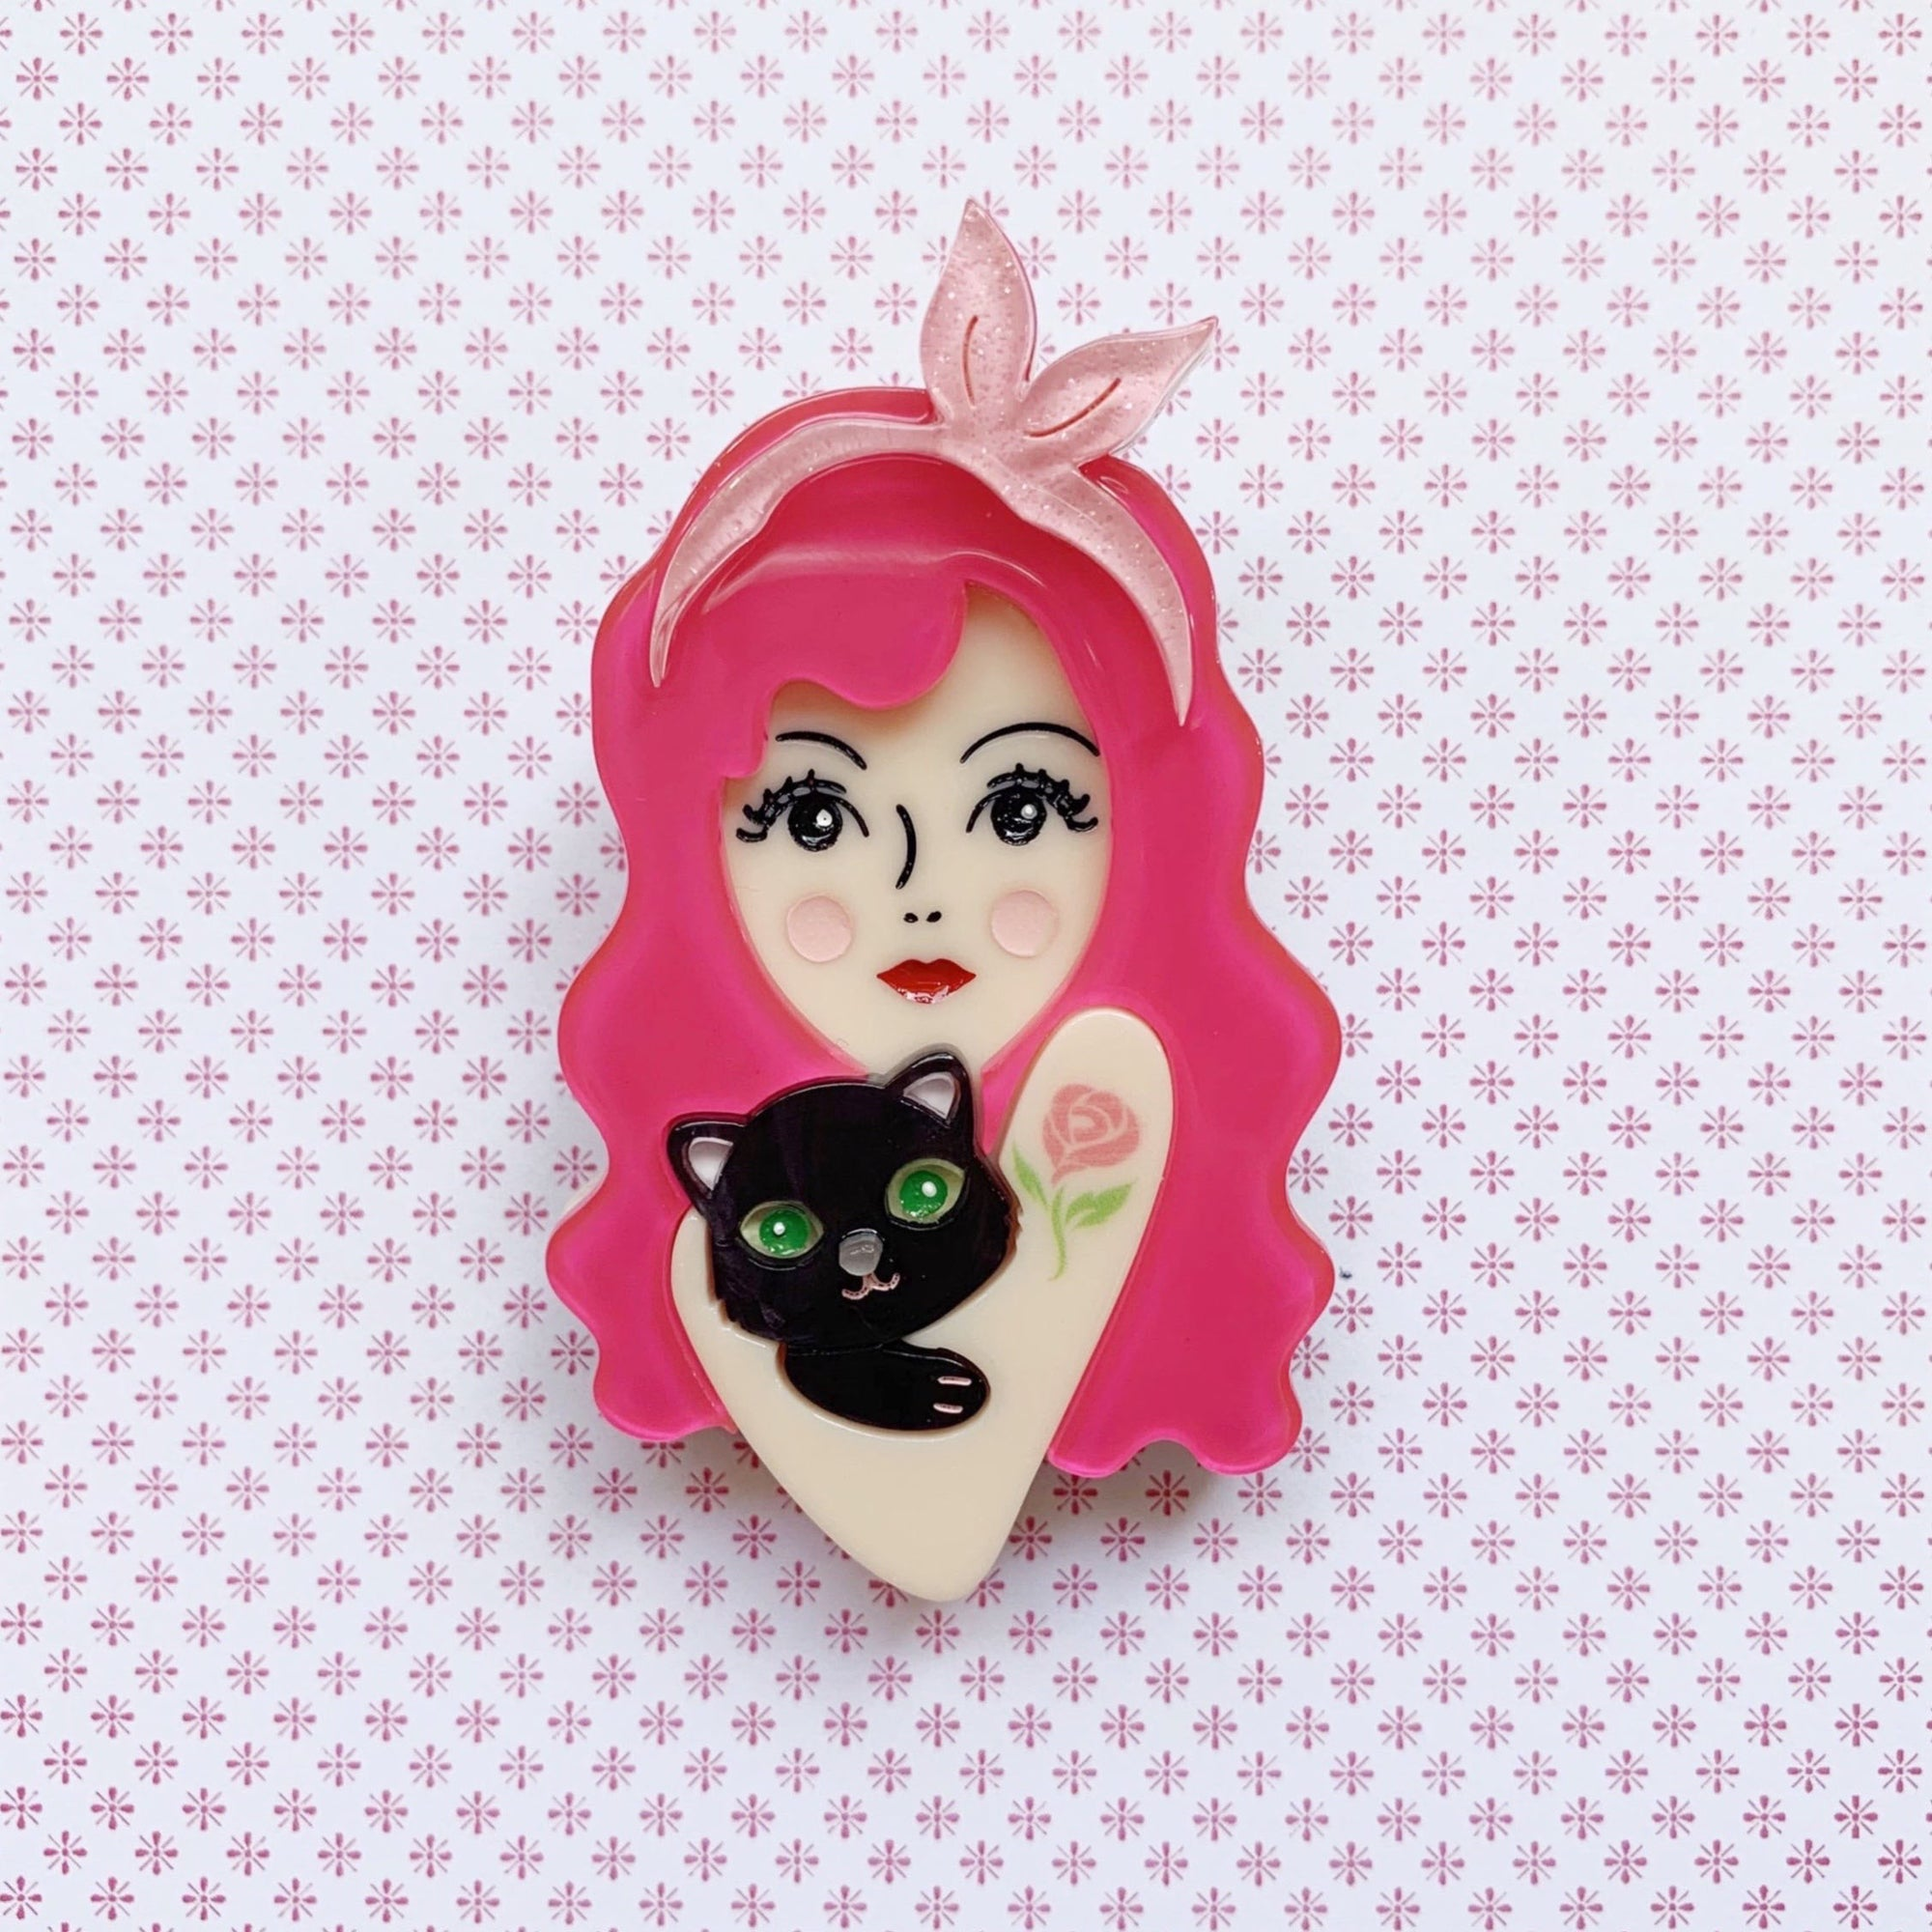 Blushing Rose (Black Kitten) Brooch 🐱